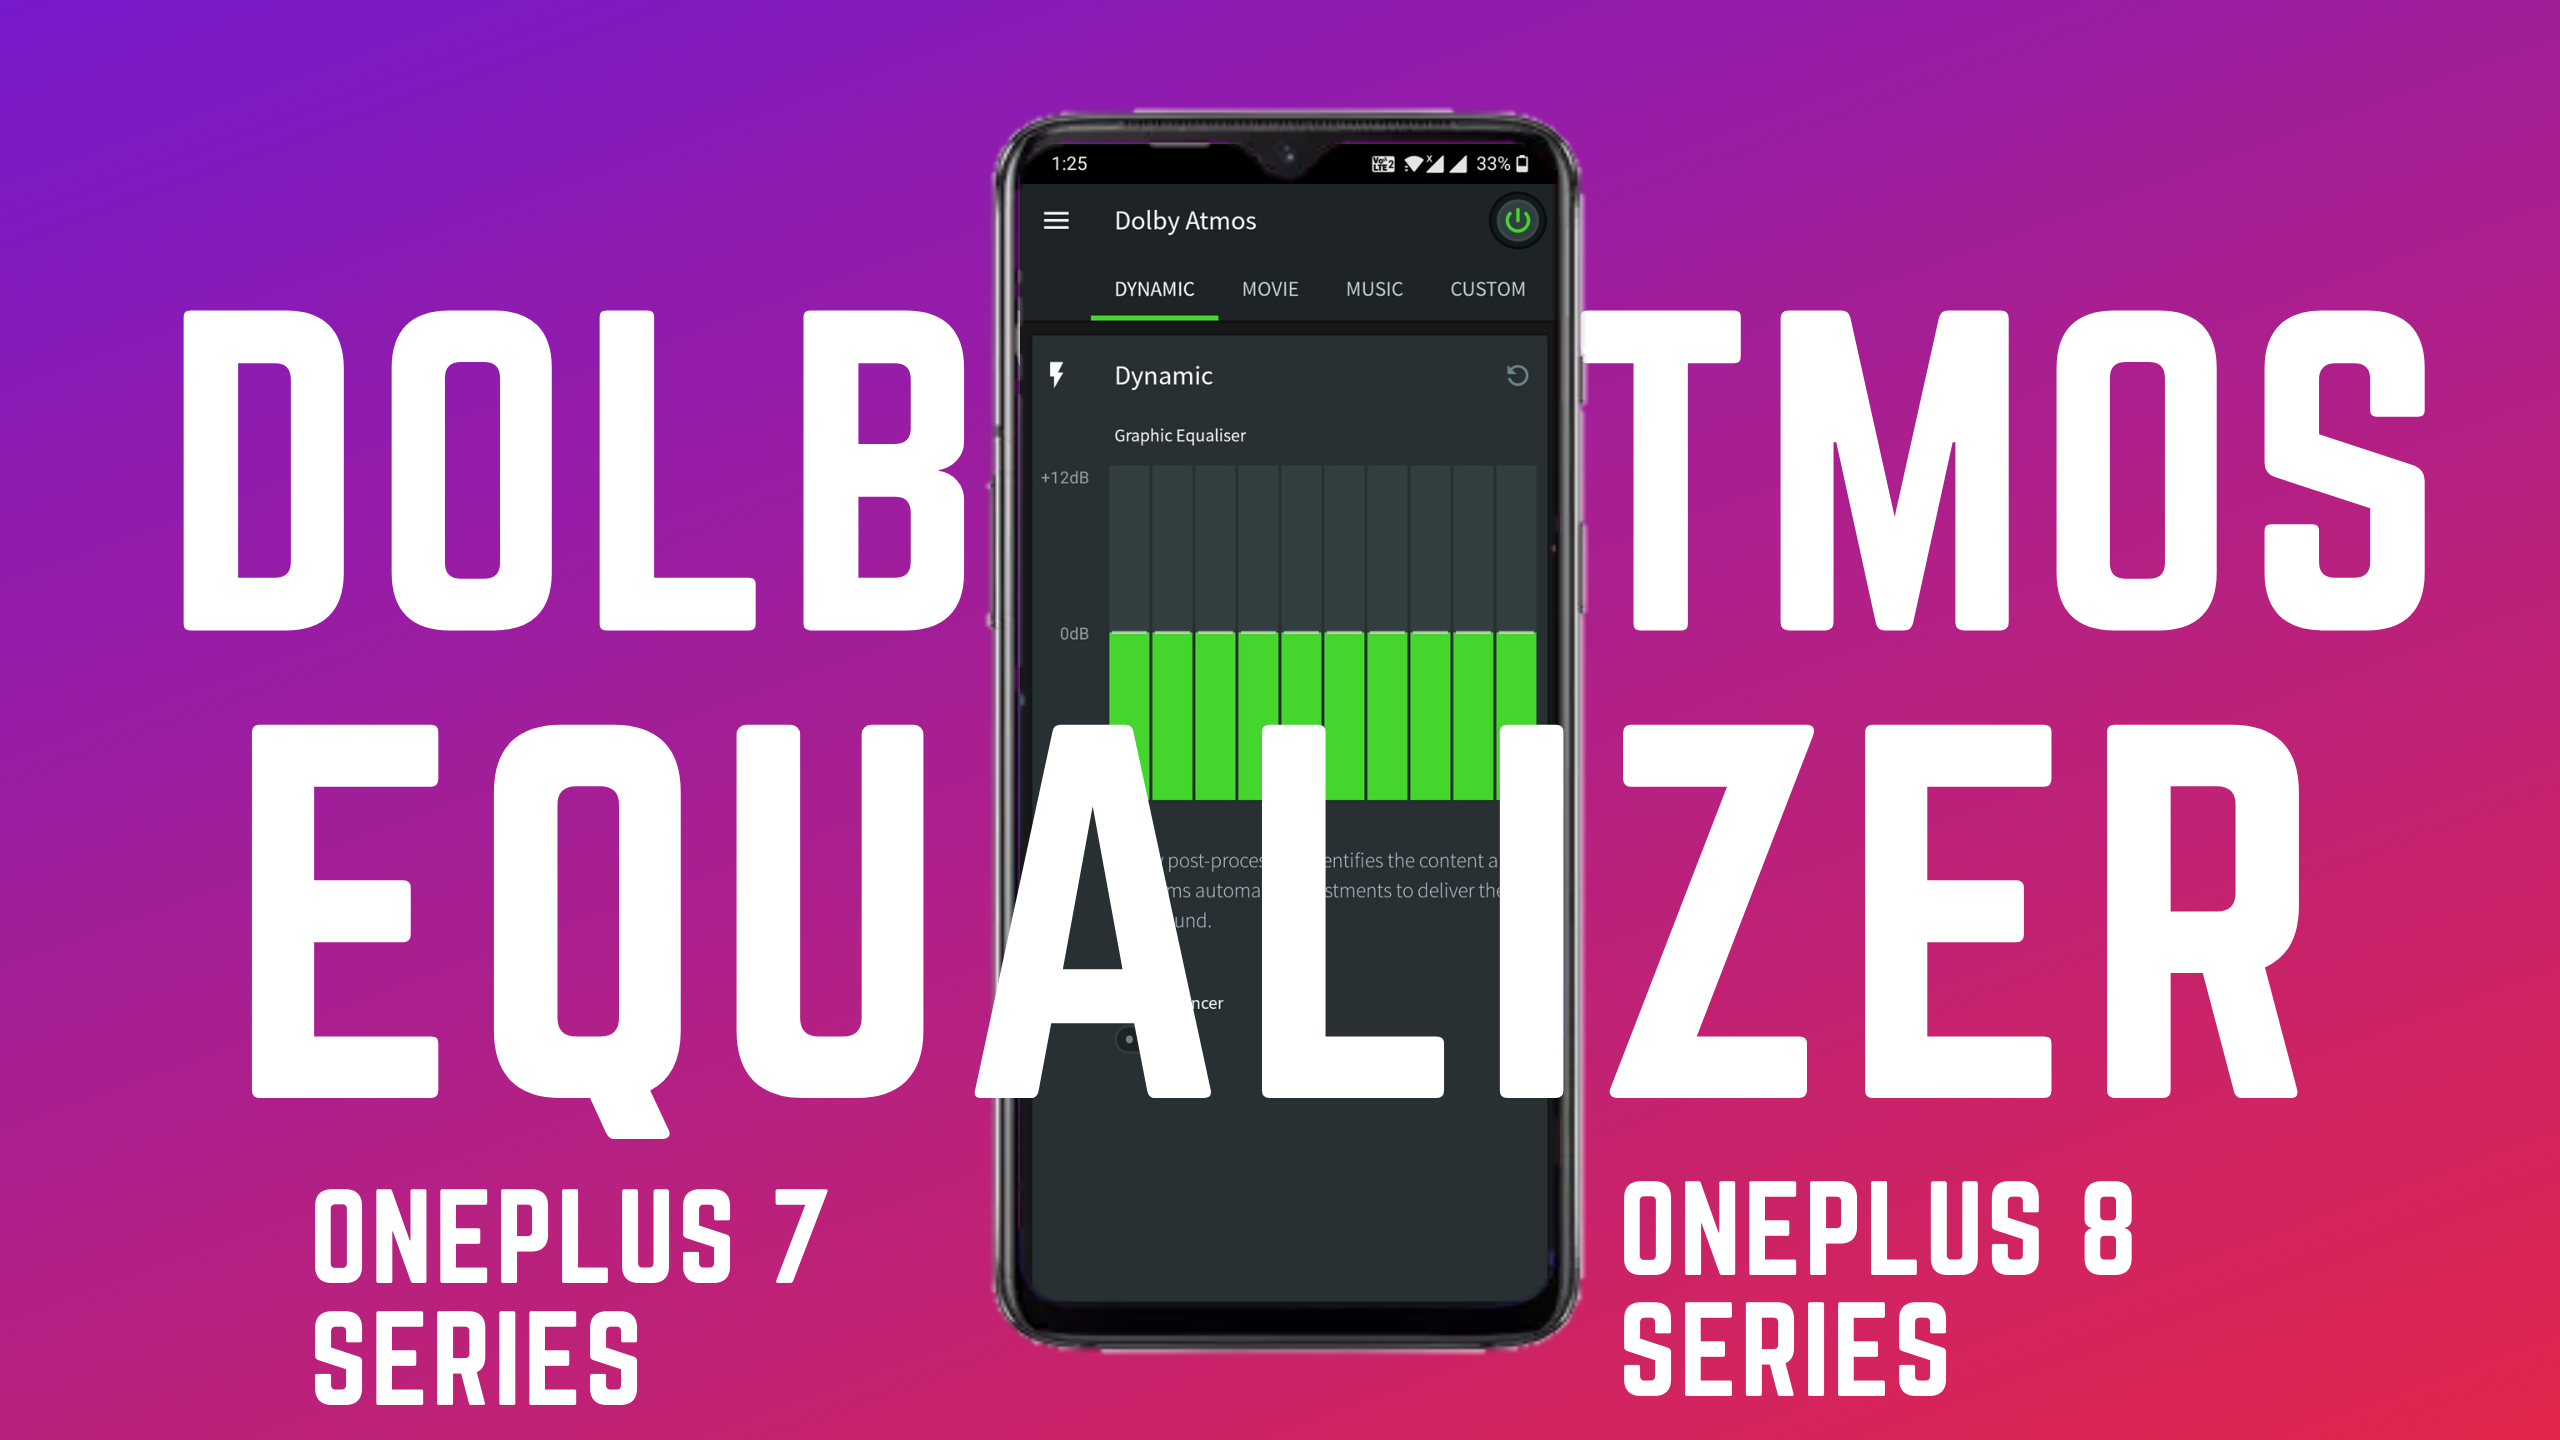 Enable Dolby Atmos Equalizer in any OnePlus (OnePlus 7 and 8 Series)